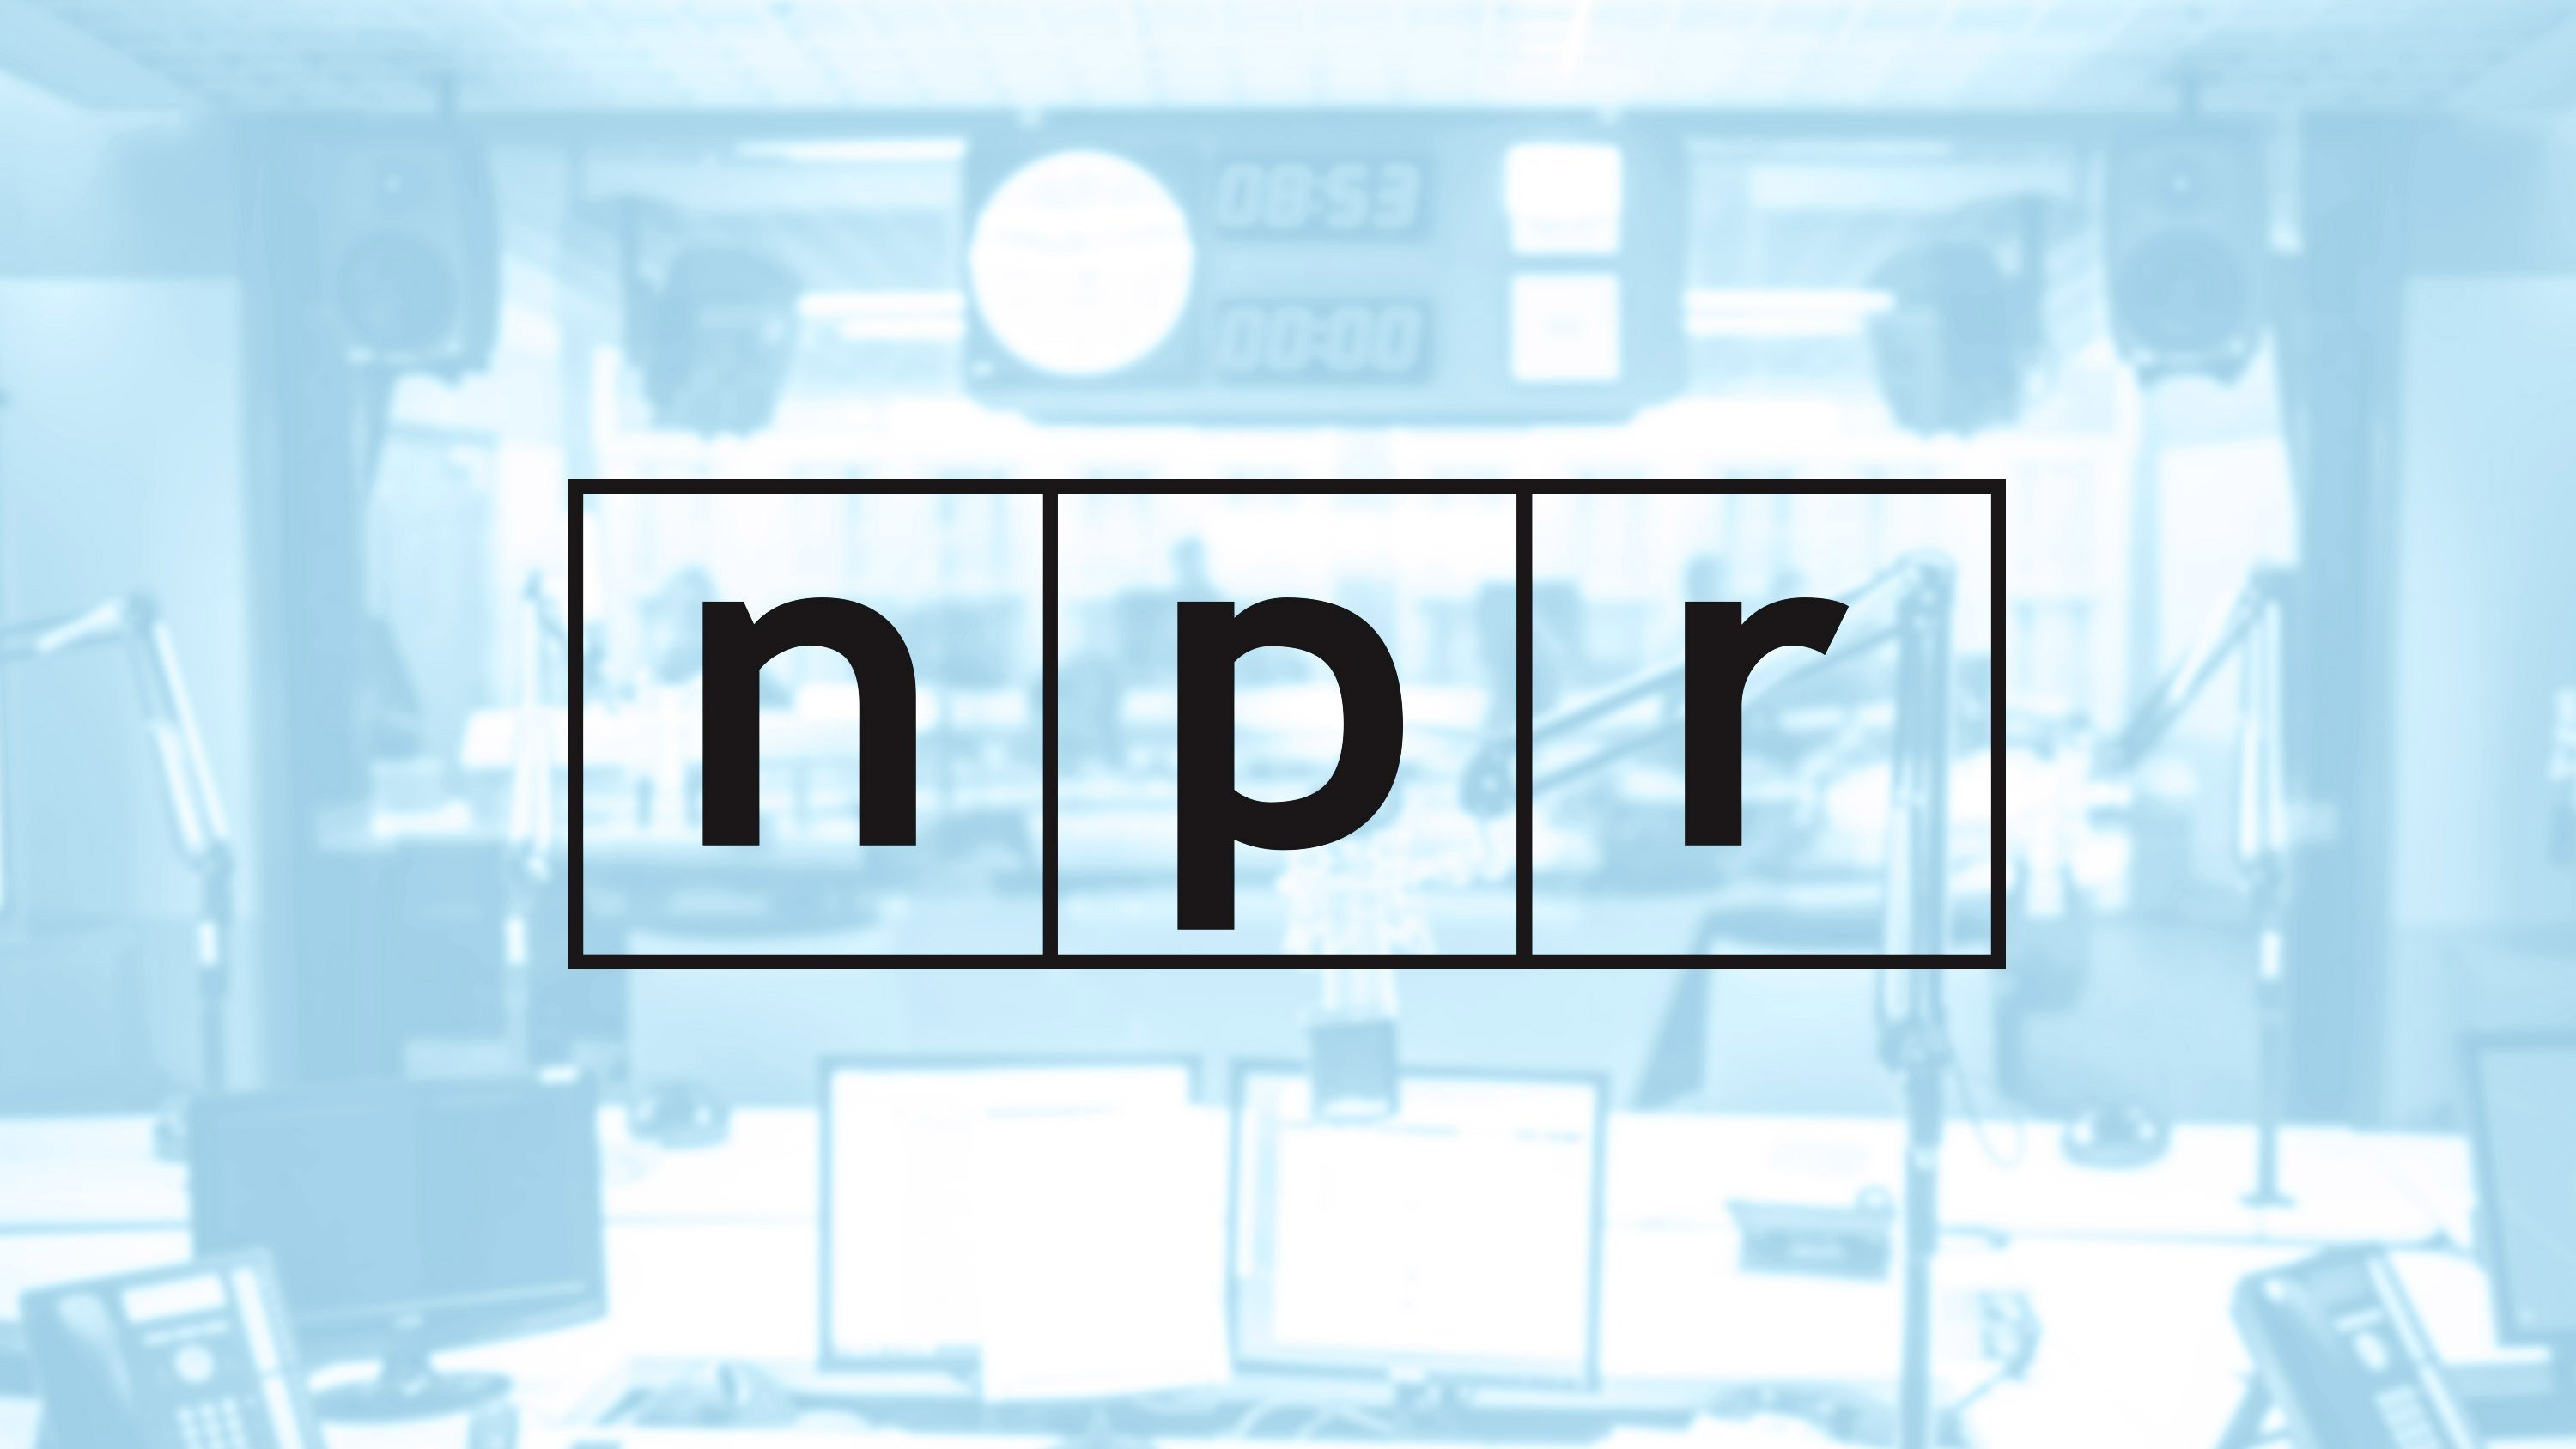 Unionized NPR employees have been working under expired contract terms. Now, it's a race against the clock: The stop-gap agreement is set to expire at midnight Friday, July 14, 2017.